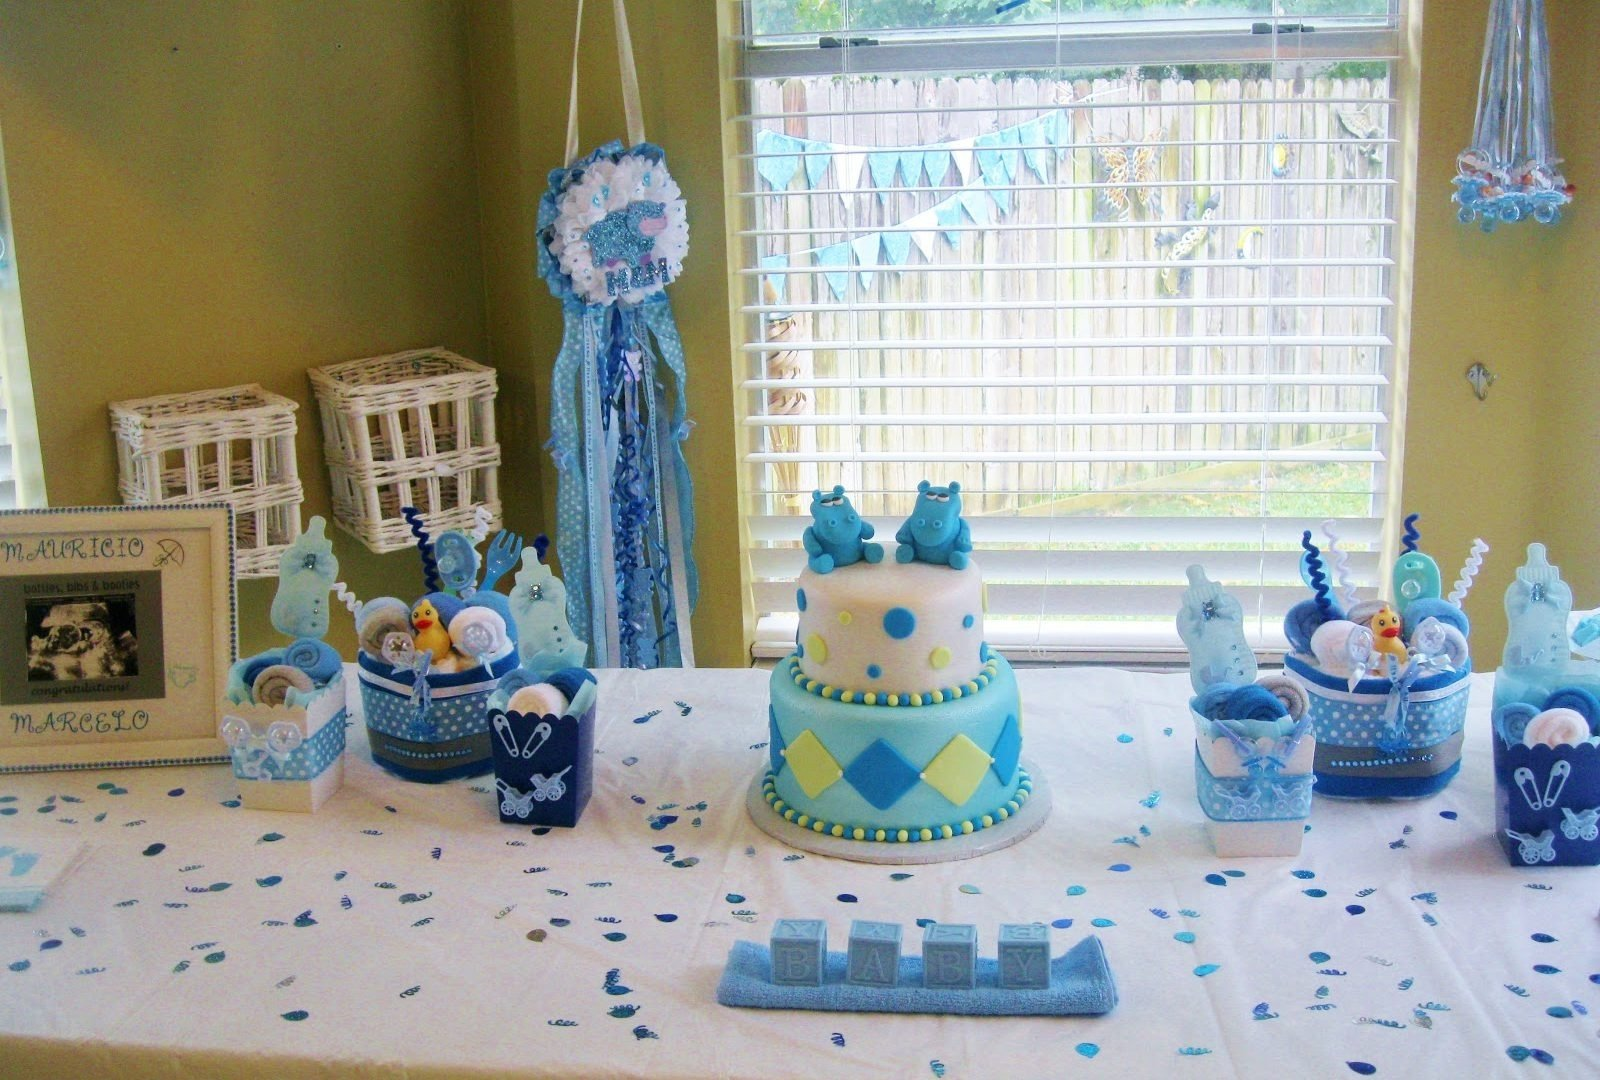 10 Trendy Baby Shower Decorations Ideas For Boys baby shower decoration ideas for boy pinterest diy centerpiece 2020